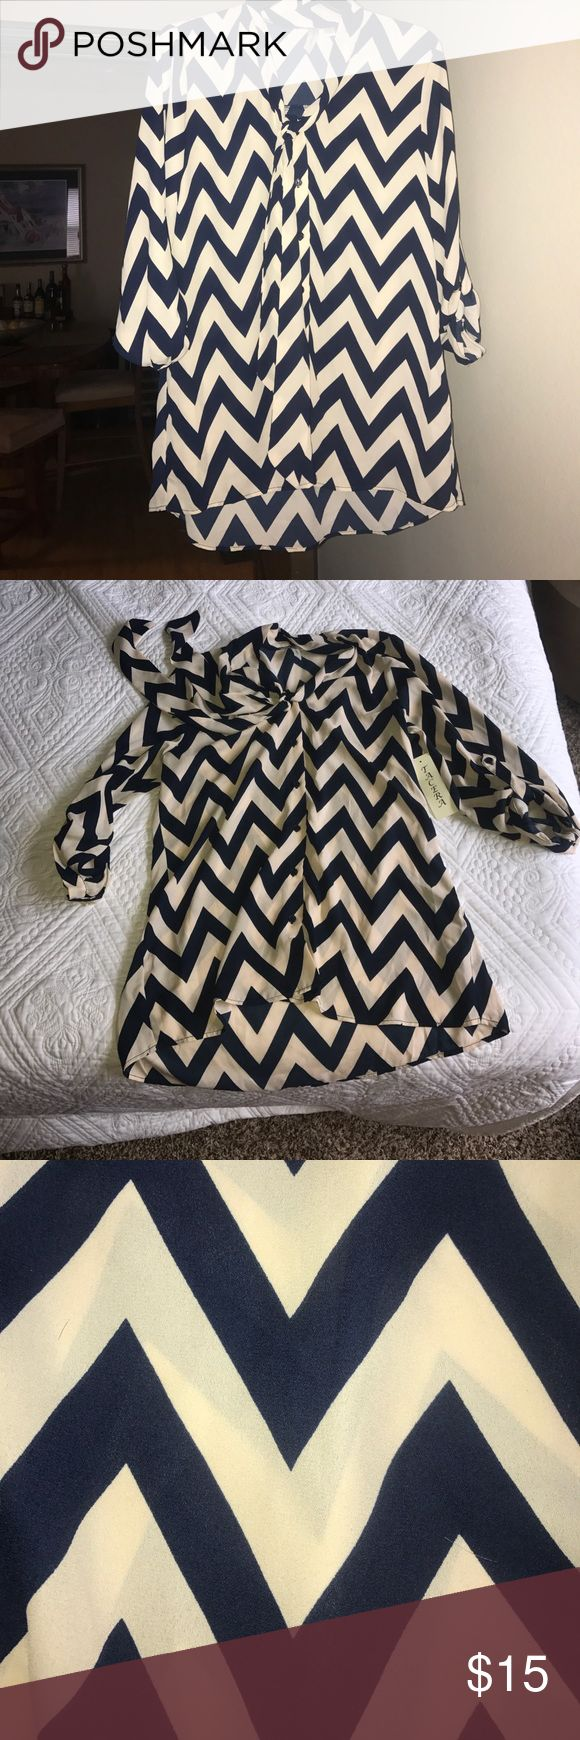 NWT Tacera Chevron Top Tan and blue chevron top. Perfect for he office. Super cute & flattering on. Comes with built in tie around the neck fit for the trend this season. Tacera Tops Blouses